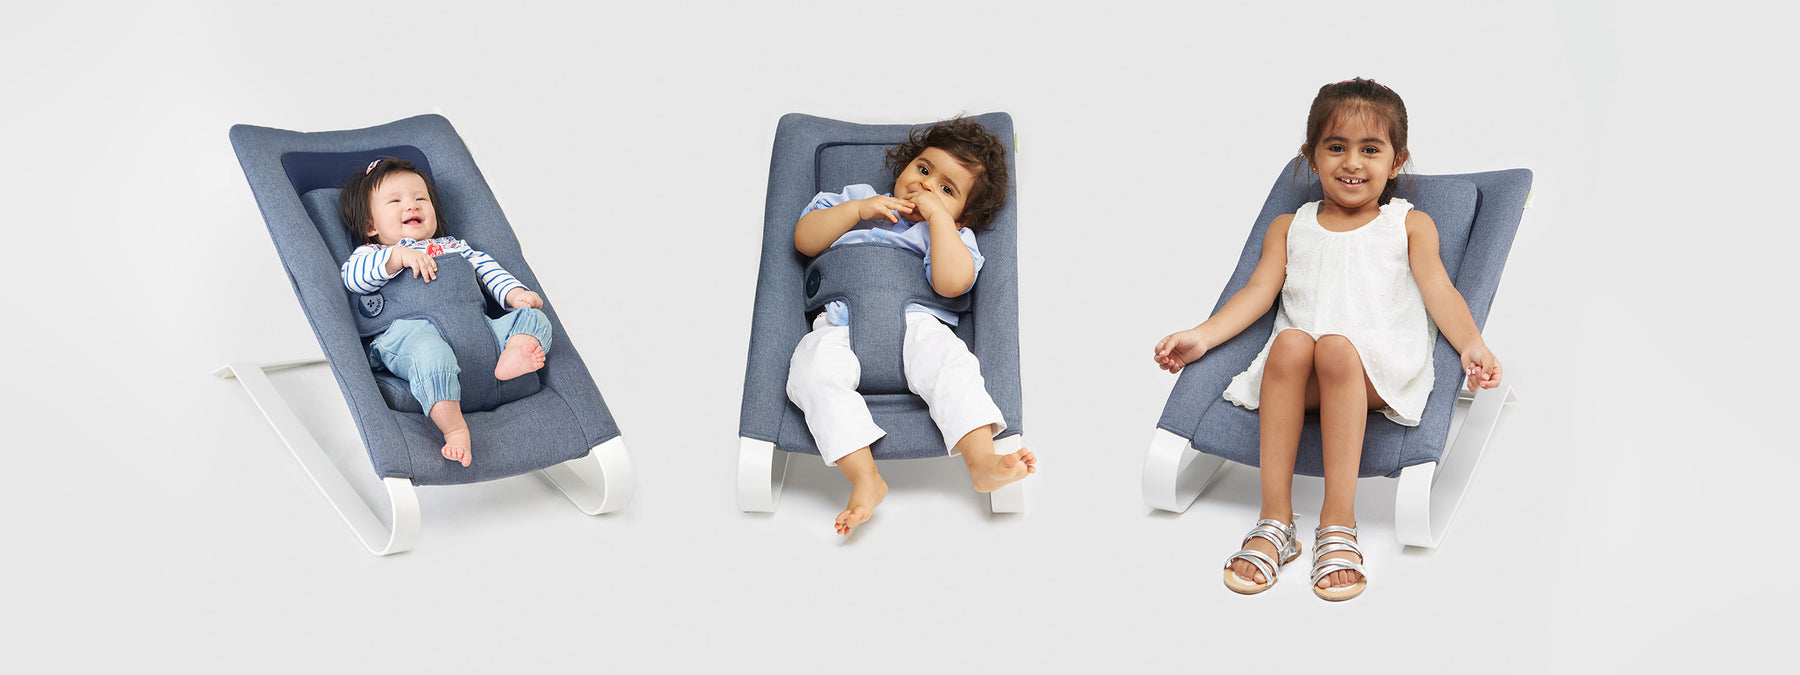 Bombol baby bouncer 3 configurations with kids